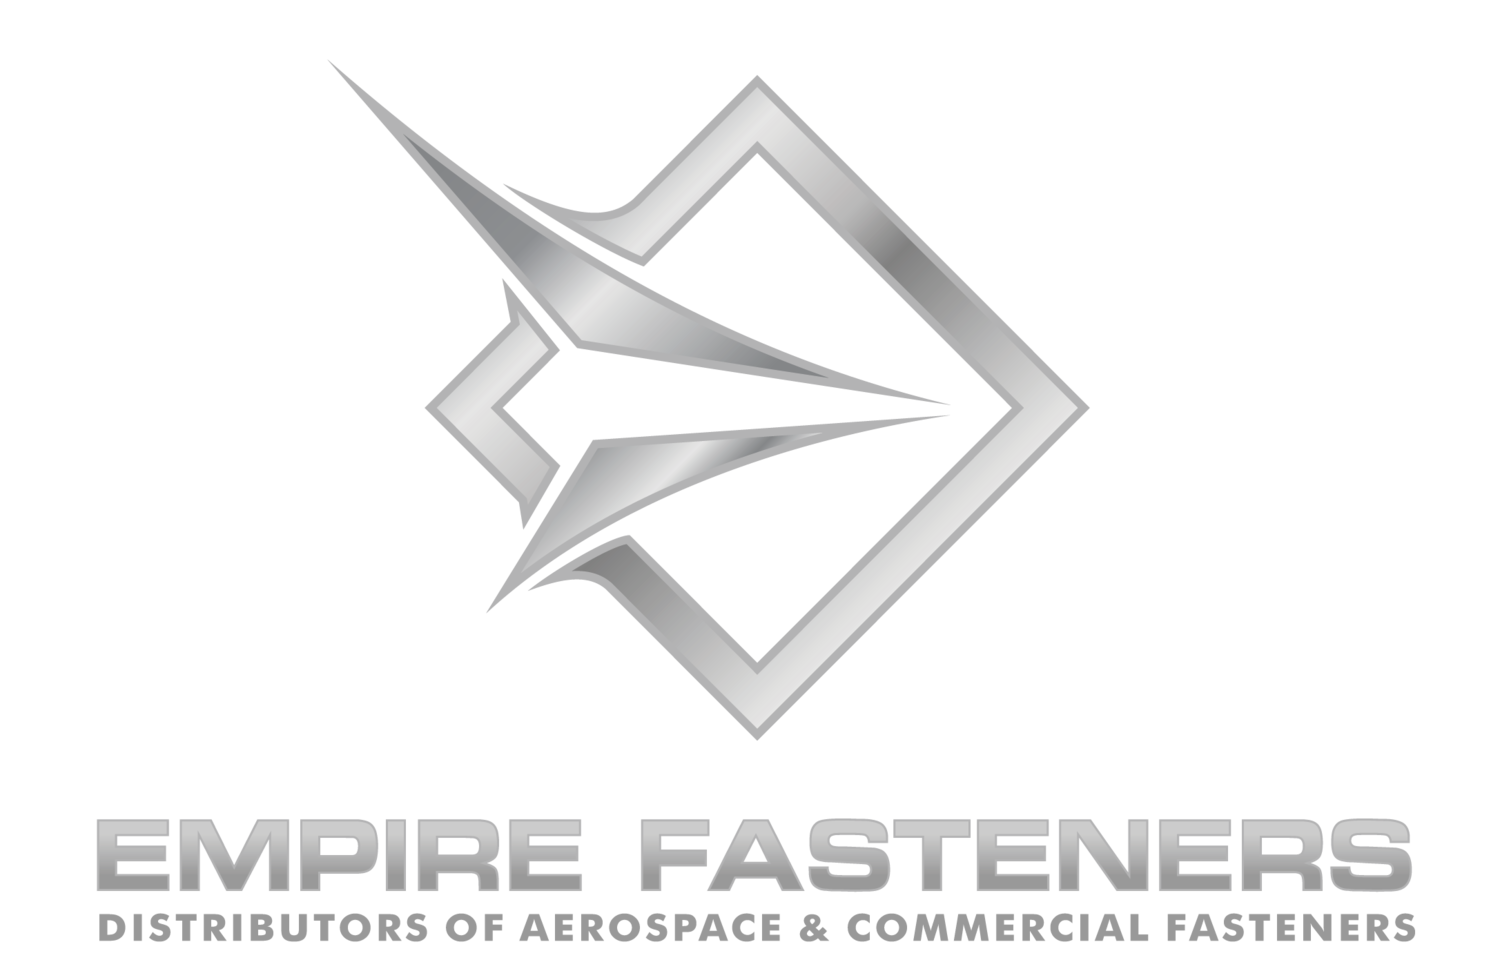 Empire Fasteners, LLC